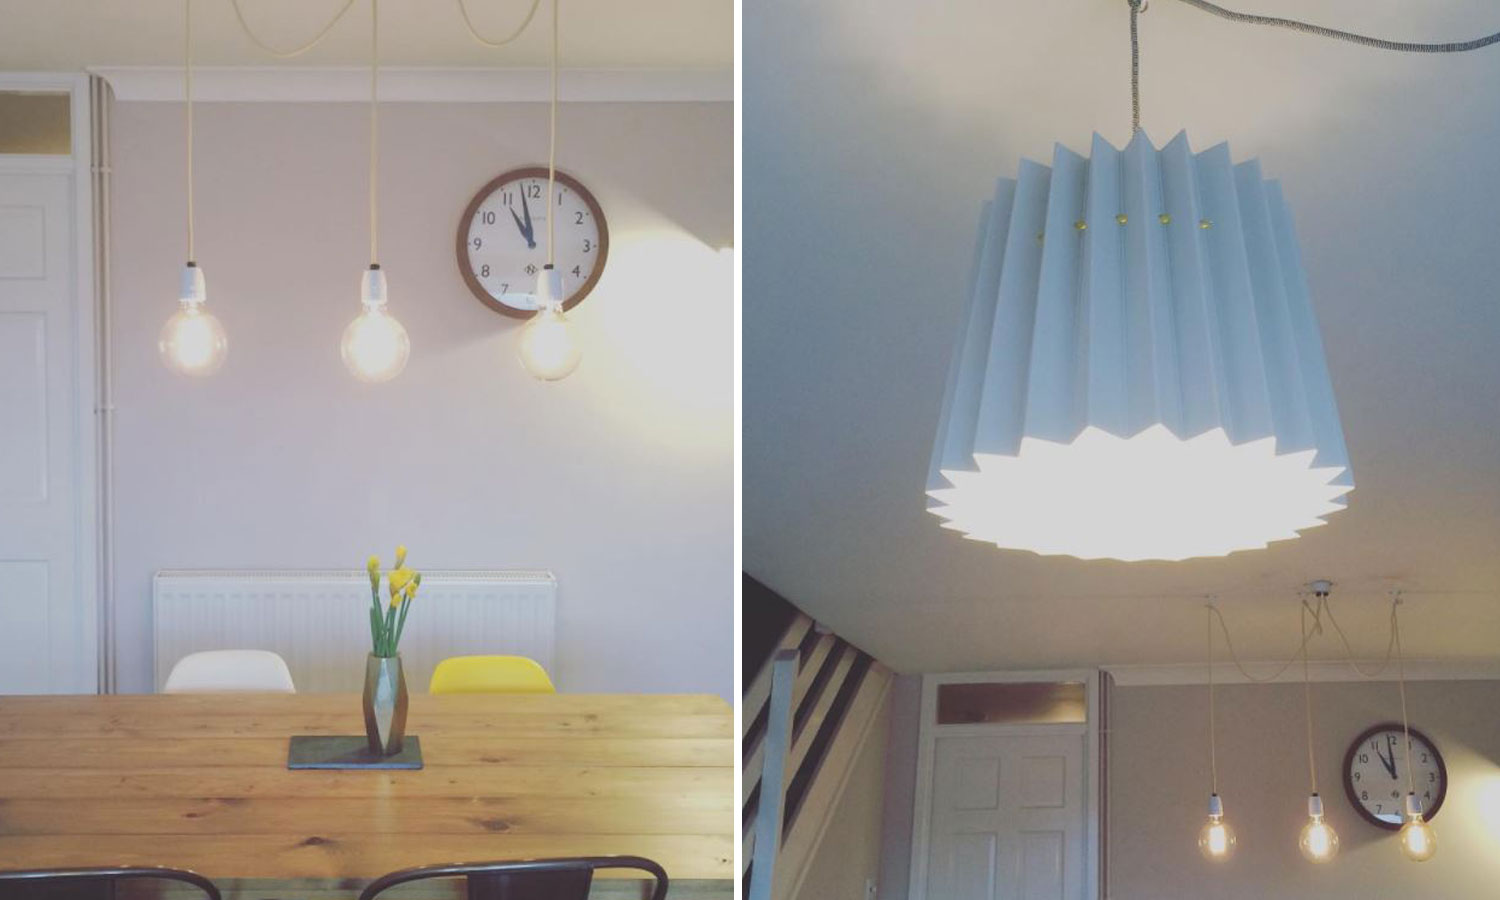 left image 3 bulb pendants above table, right image light blue origami lamp shade